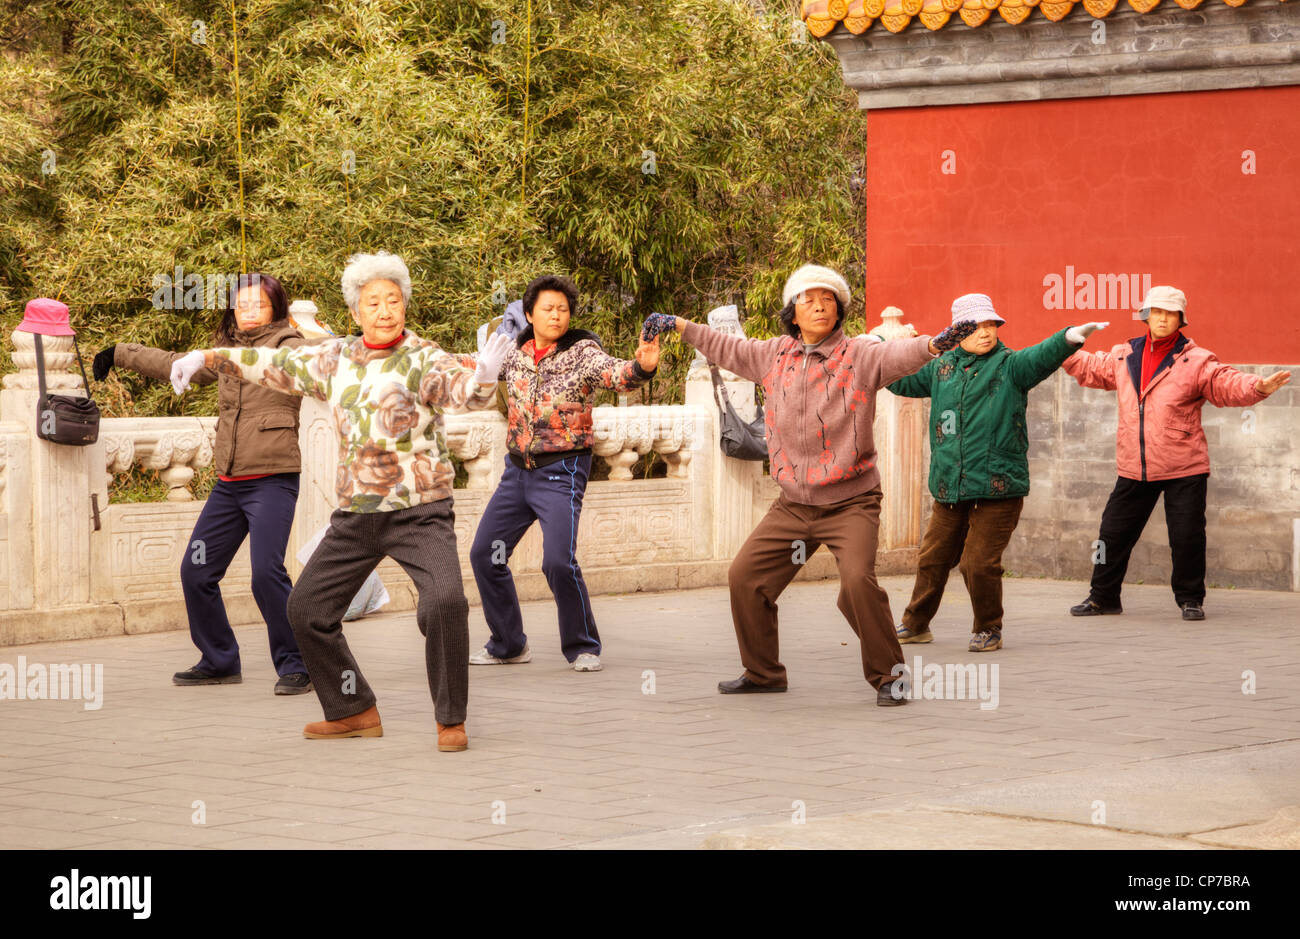 Group of women performing tai chi or taiji outdoors at Jingshan Park, Beijing. - Stock Image